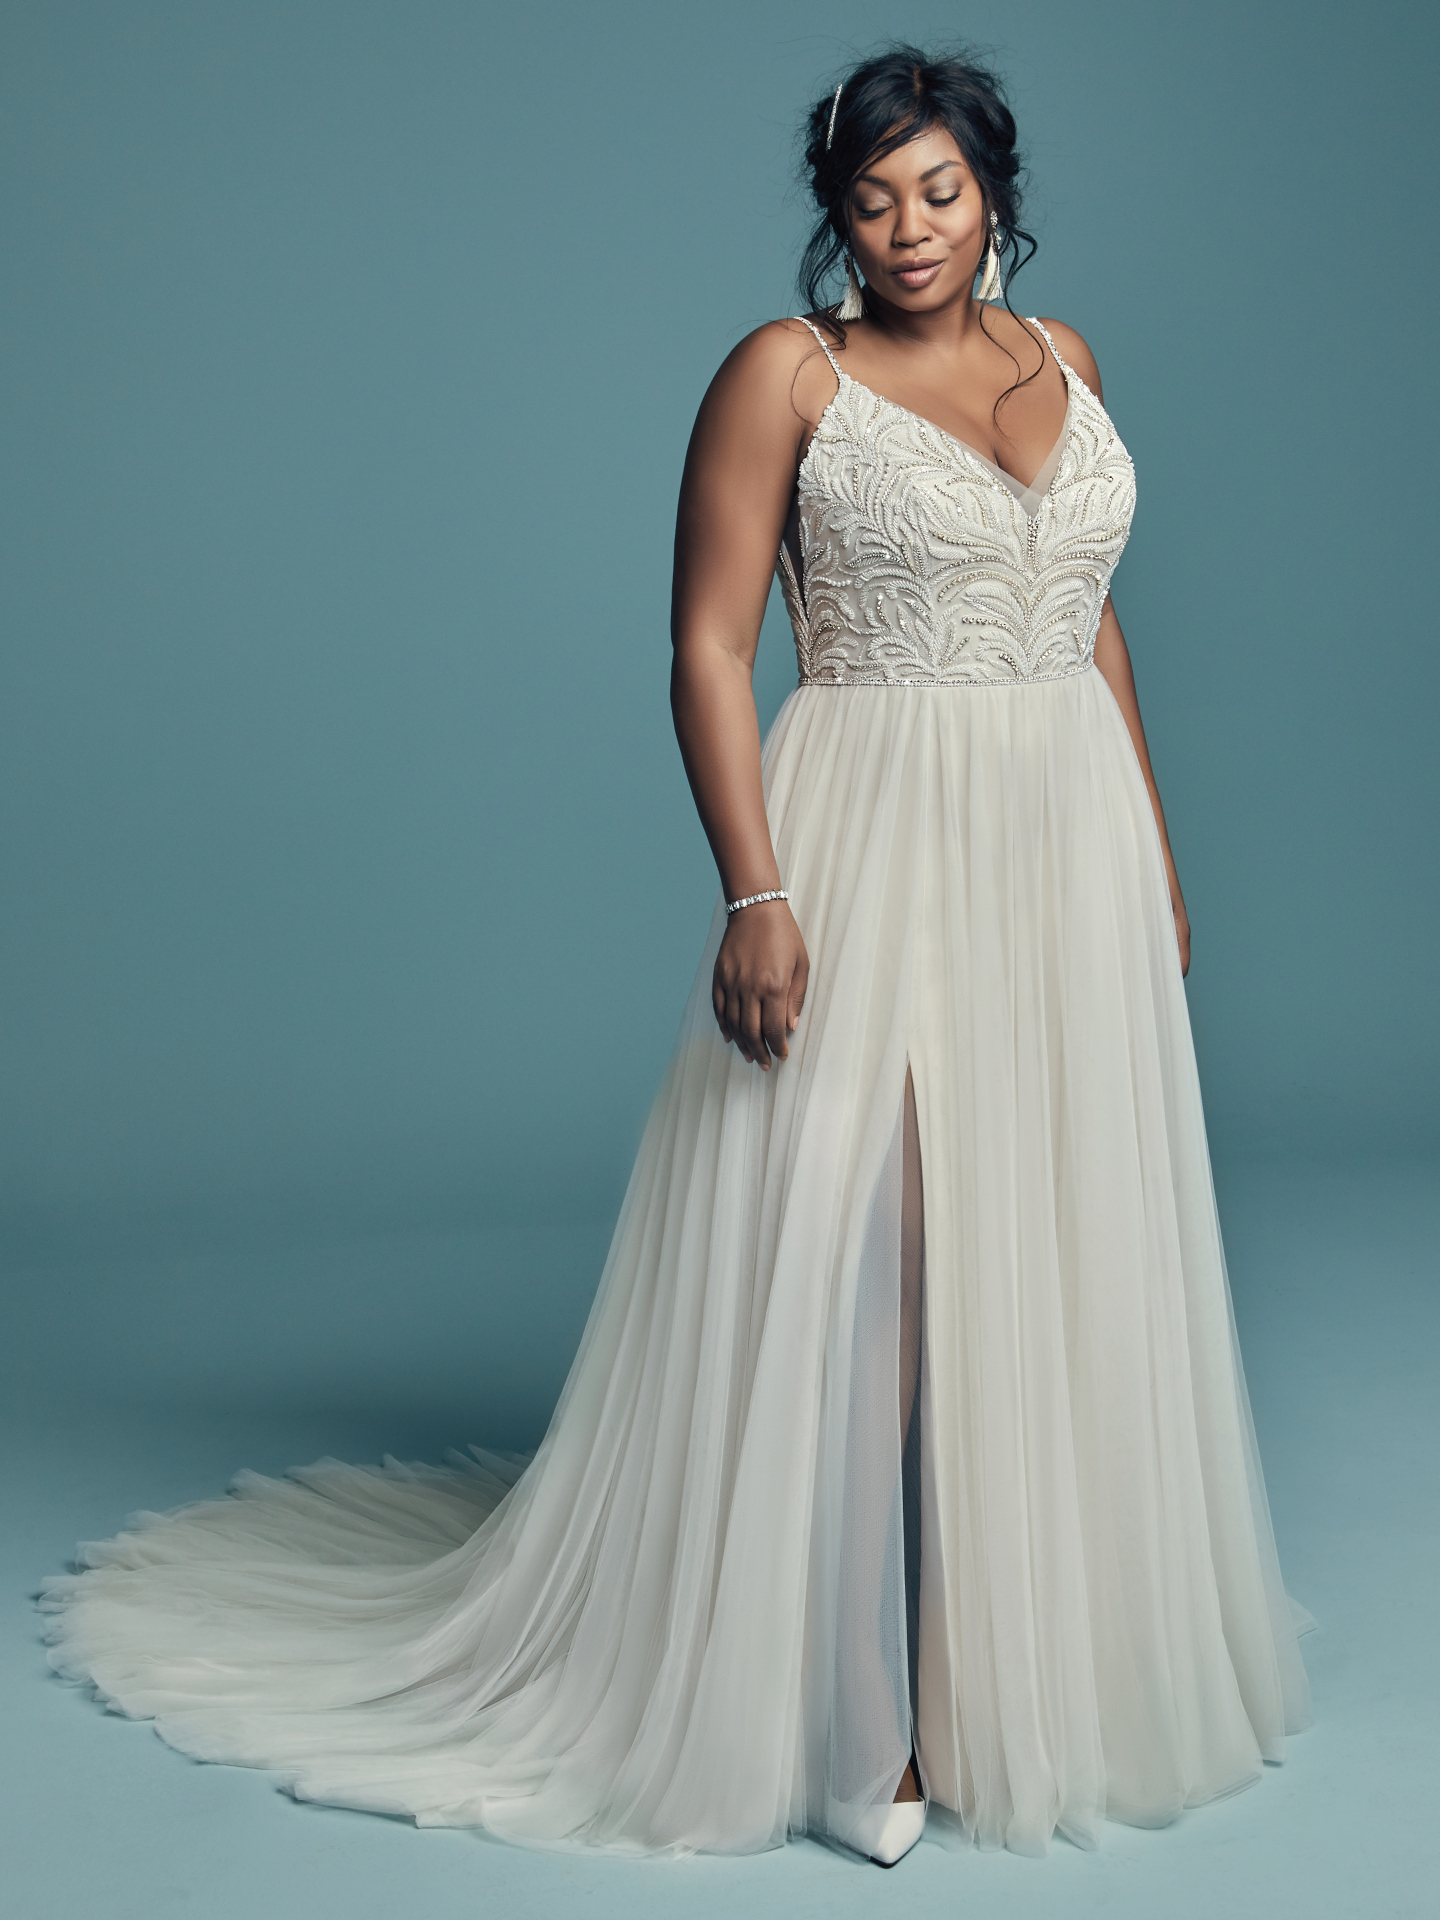 Flattering Wedding Dresses for Curvy Brides - Love Maggie : Love Maggie